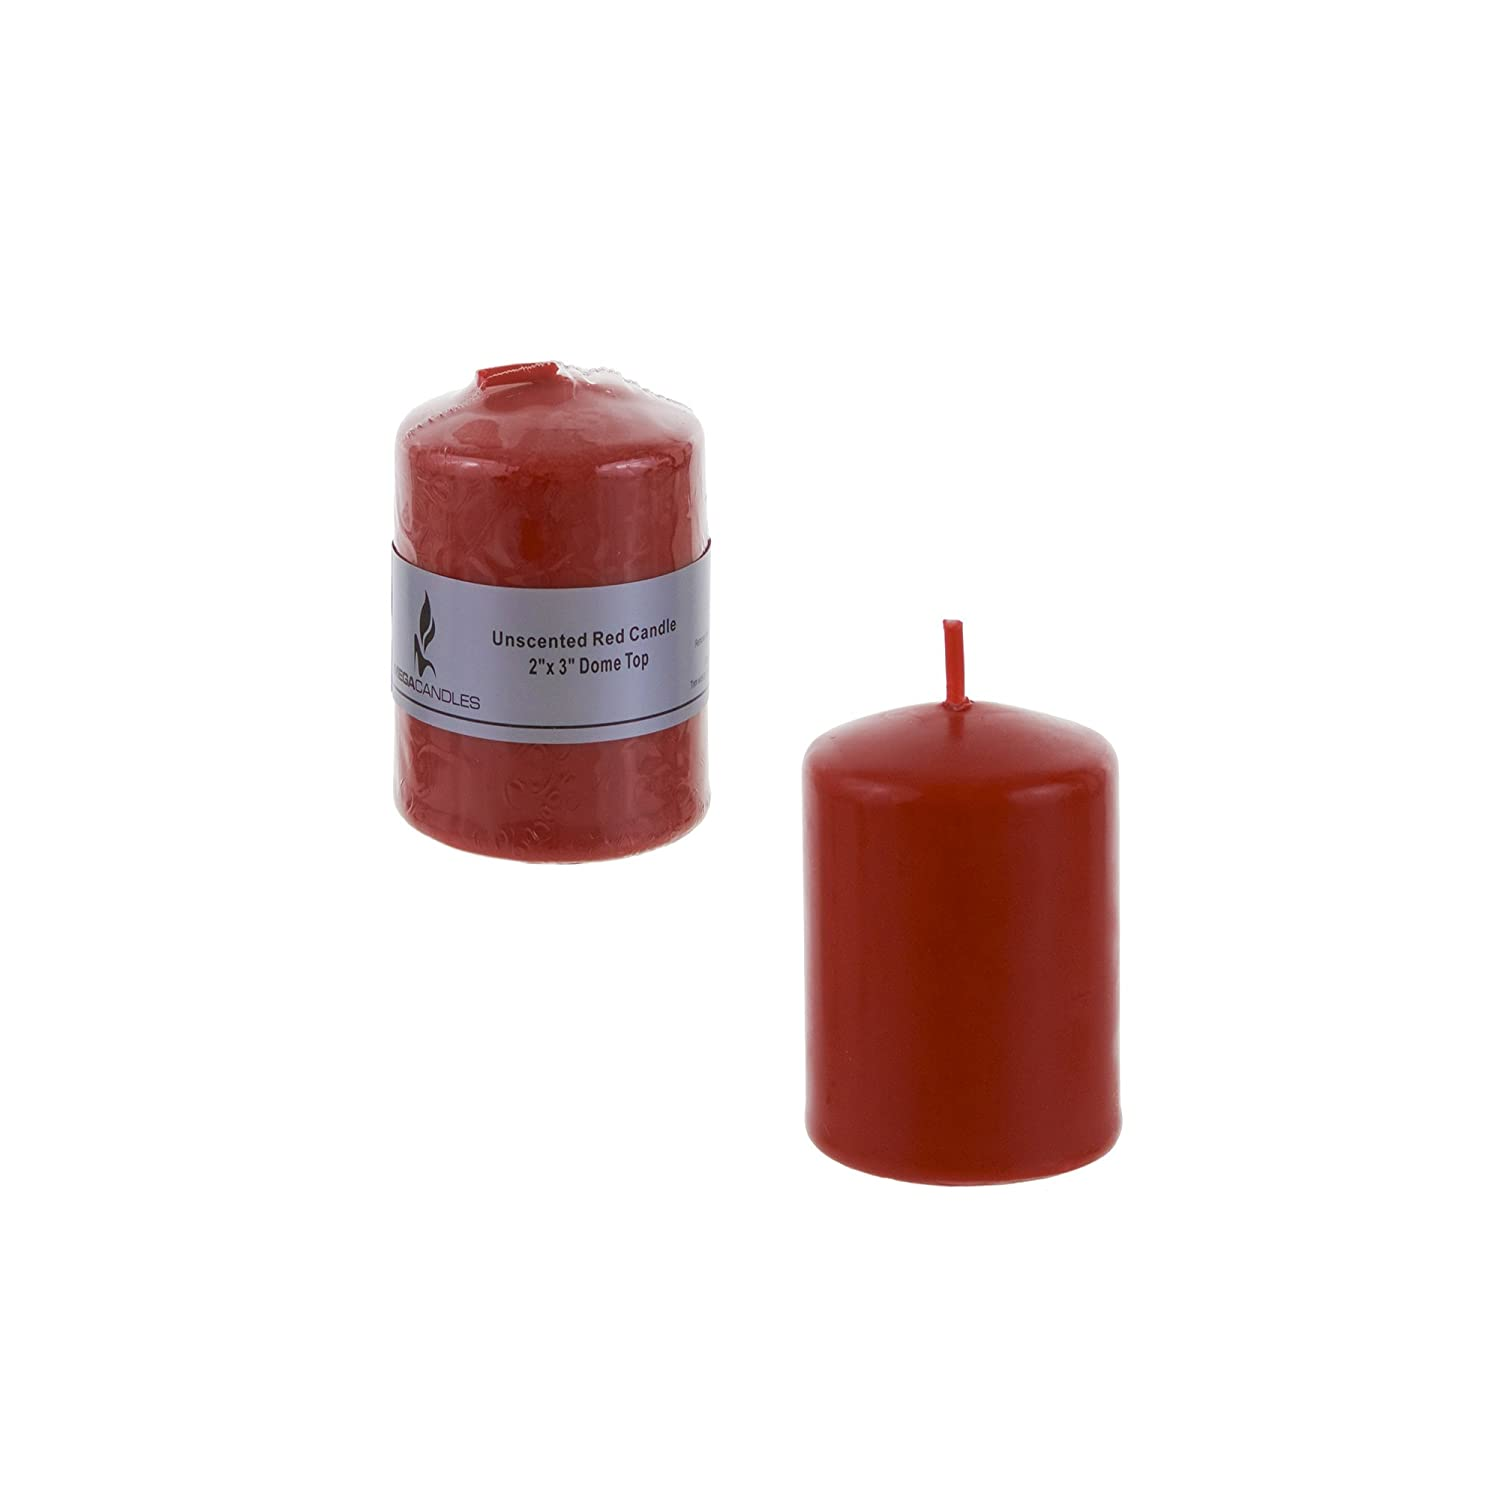 Home D/écor Pressed Premium Wax Candles 2 Inch x 3 Inch Baby Showers Mega Candles Unscented Red Round Pillar Candle Party Favors /& More Celebrations Birthdays Wedding Receptions